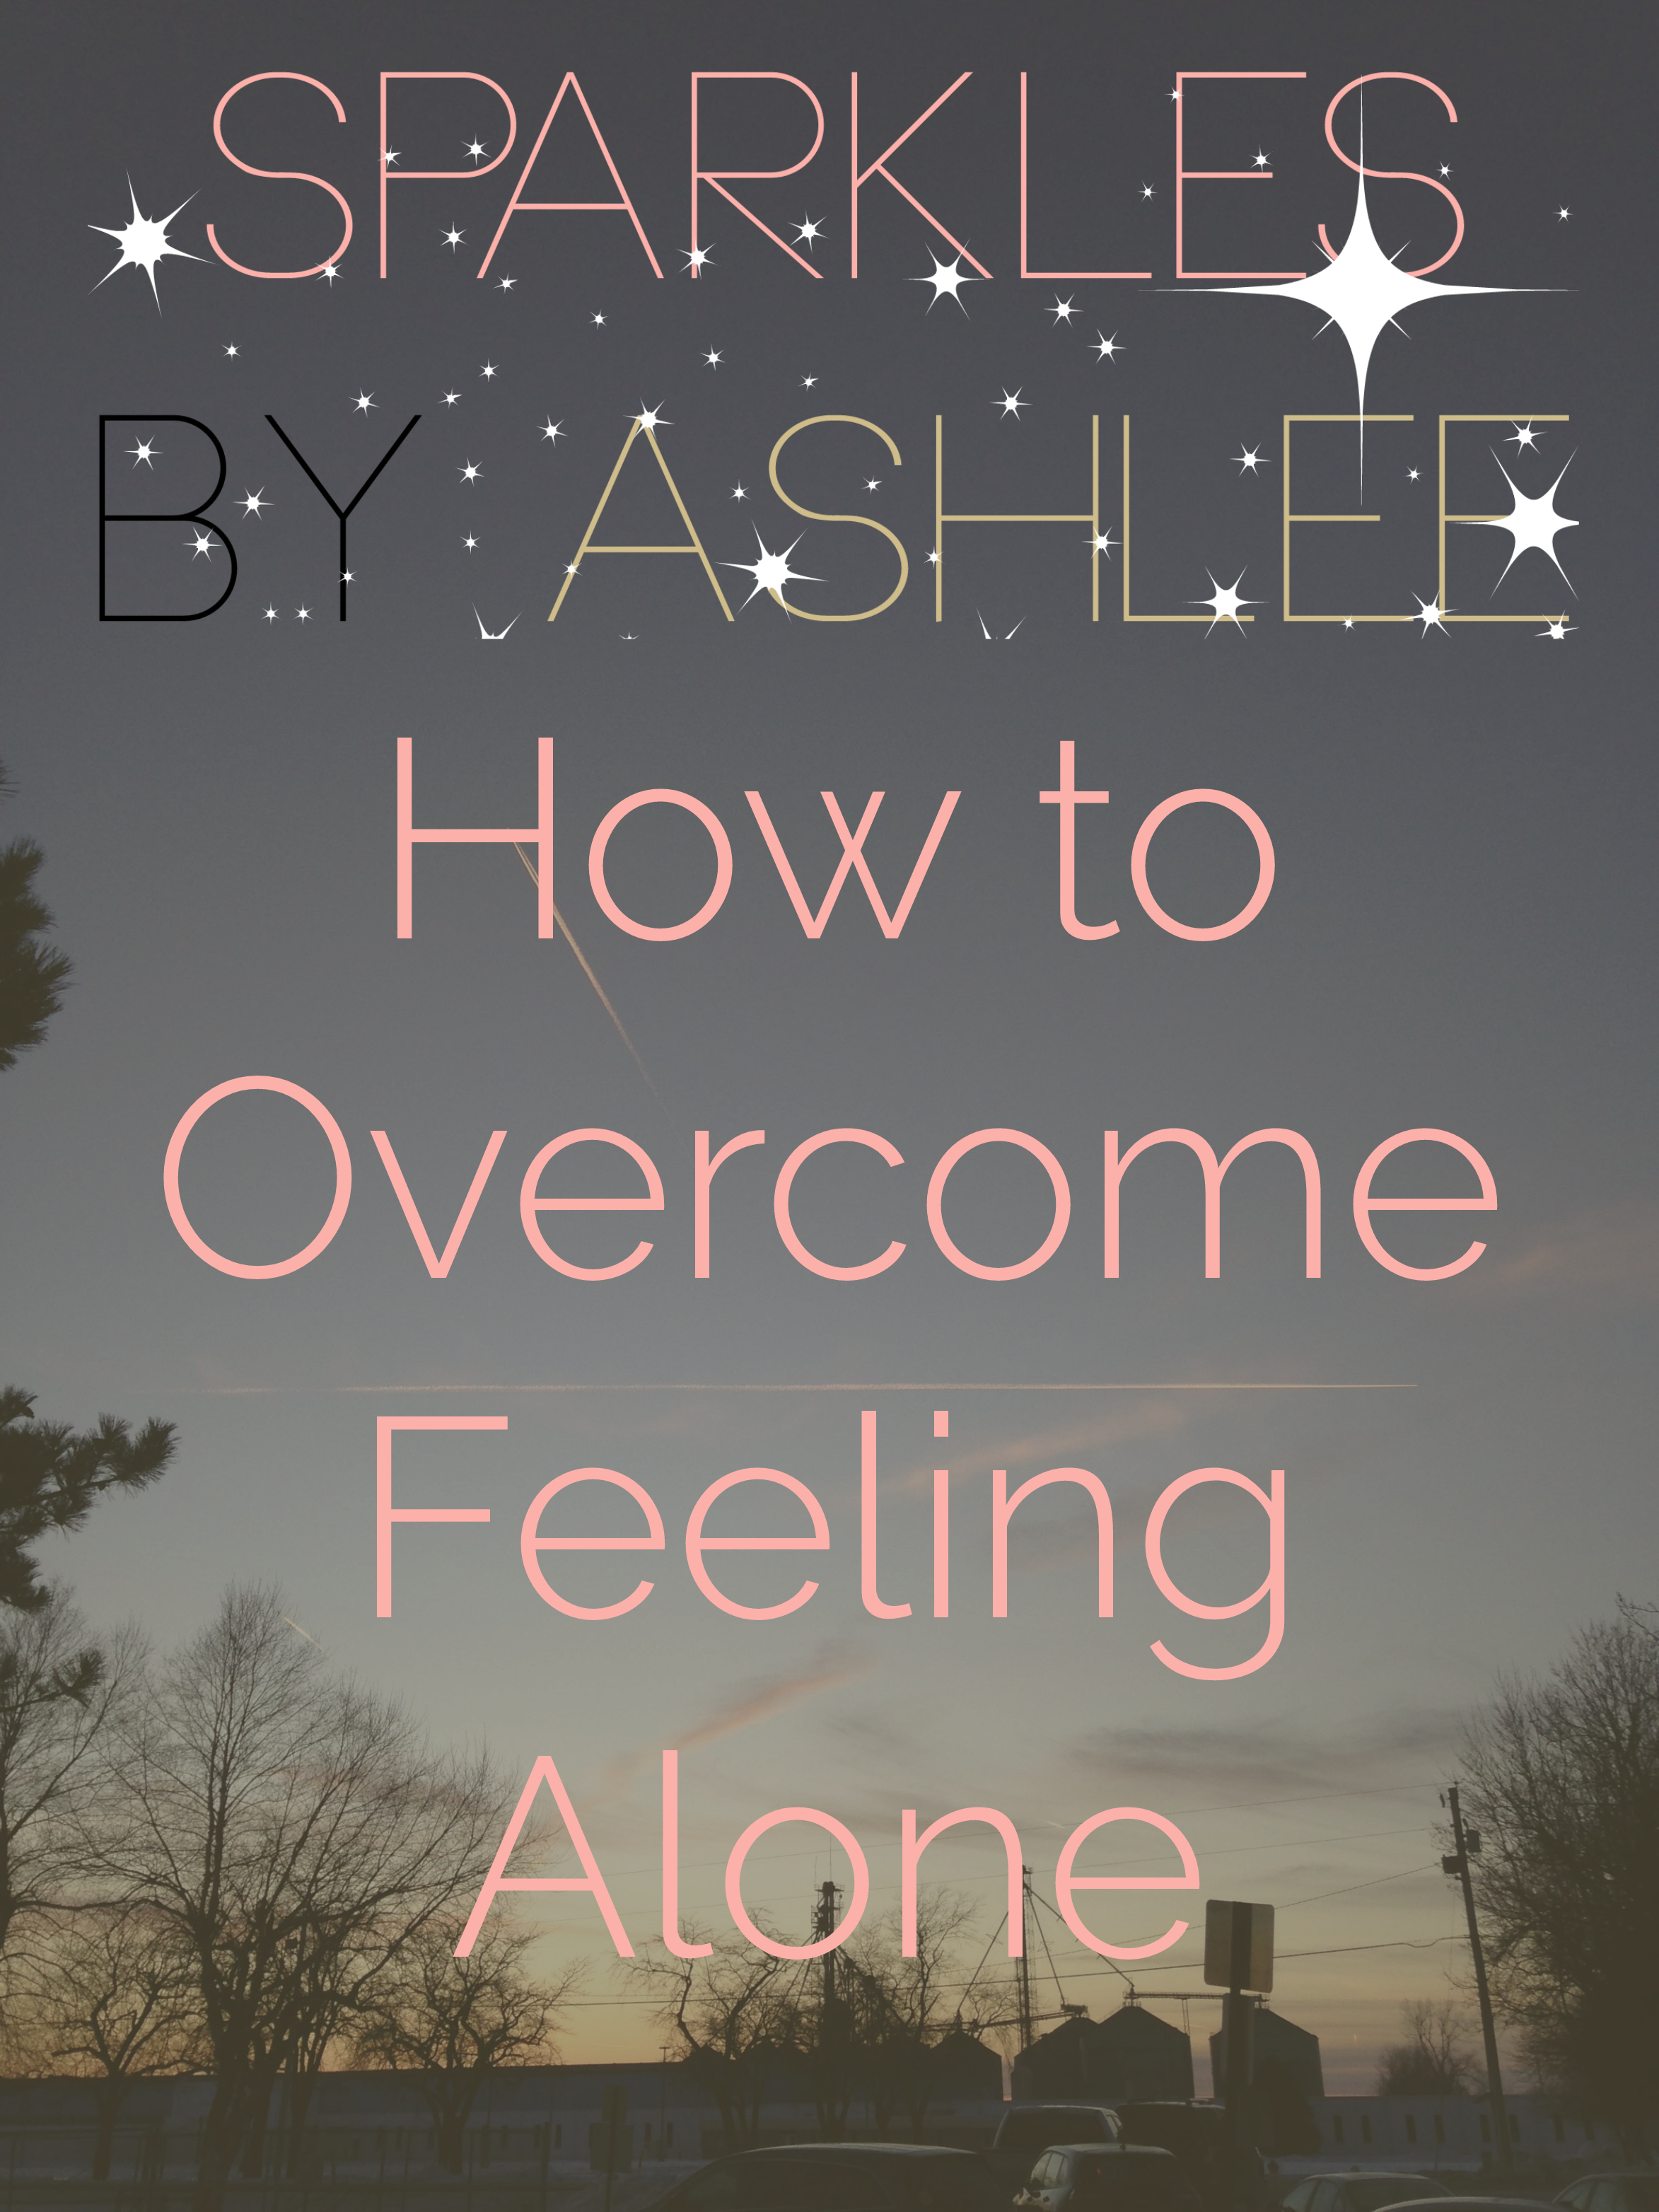 How-to-Overcome-Feeling-Alone-Sparkles-by-Ashlee.jpg